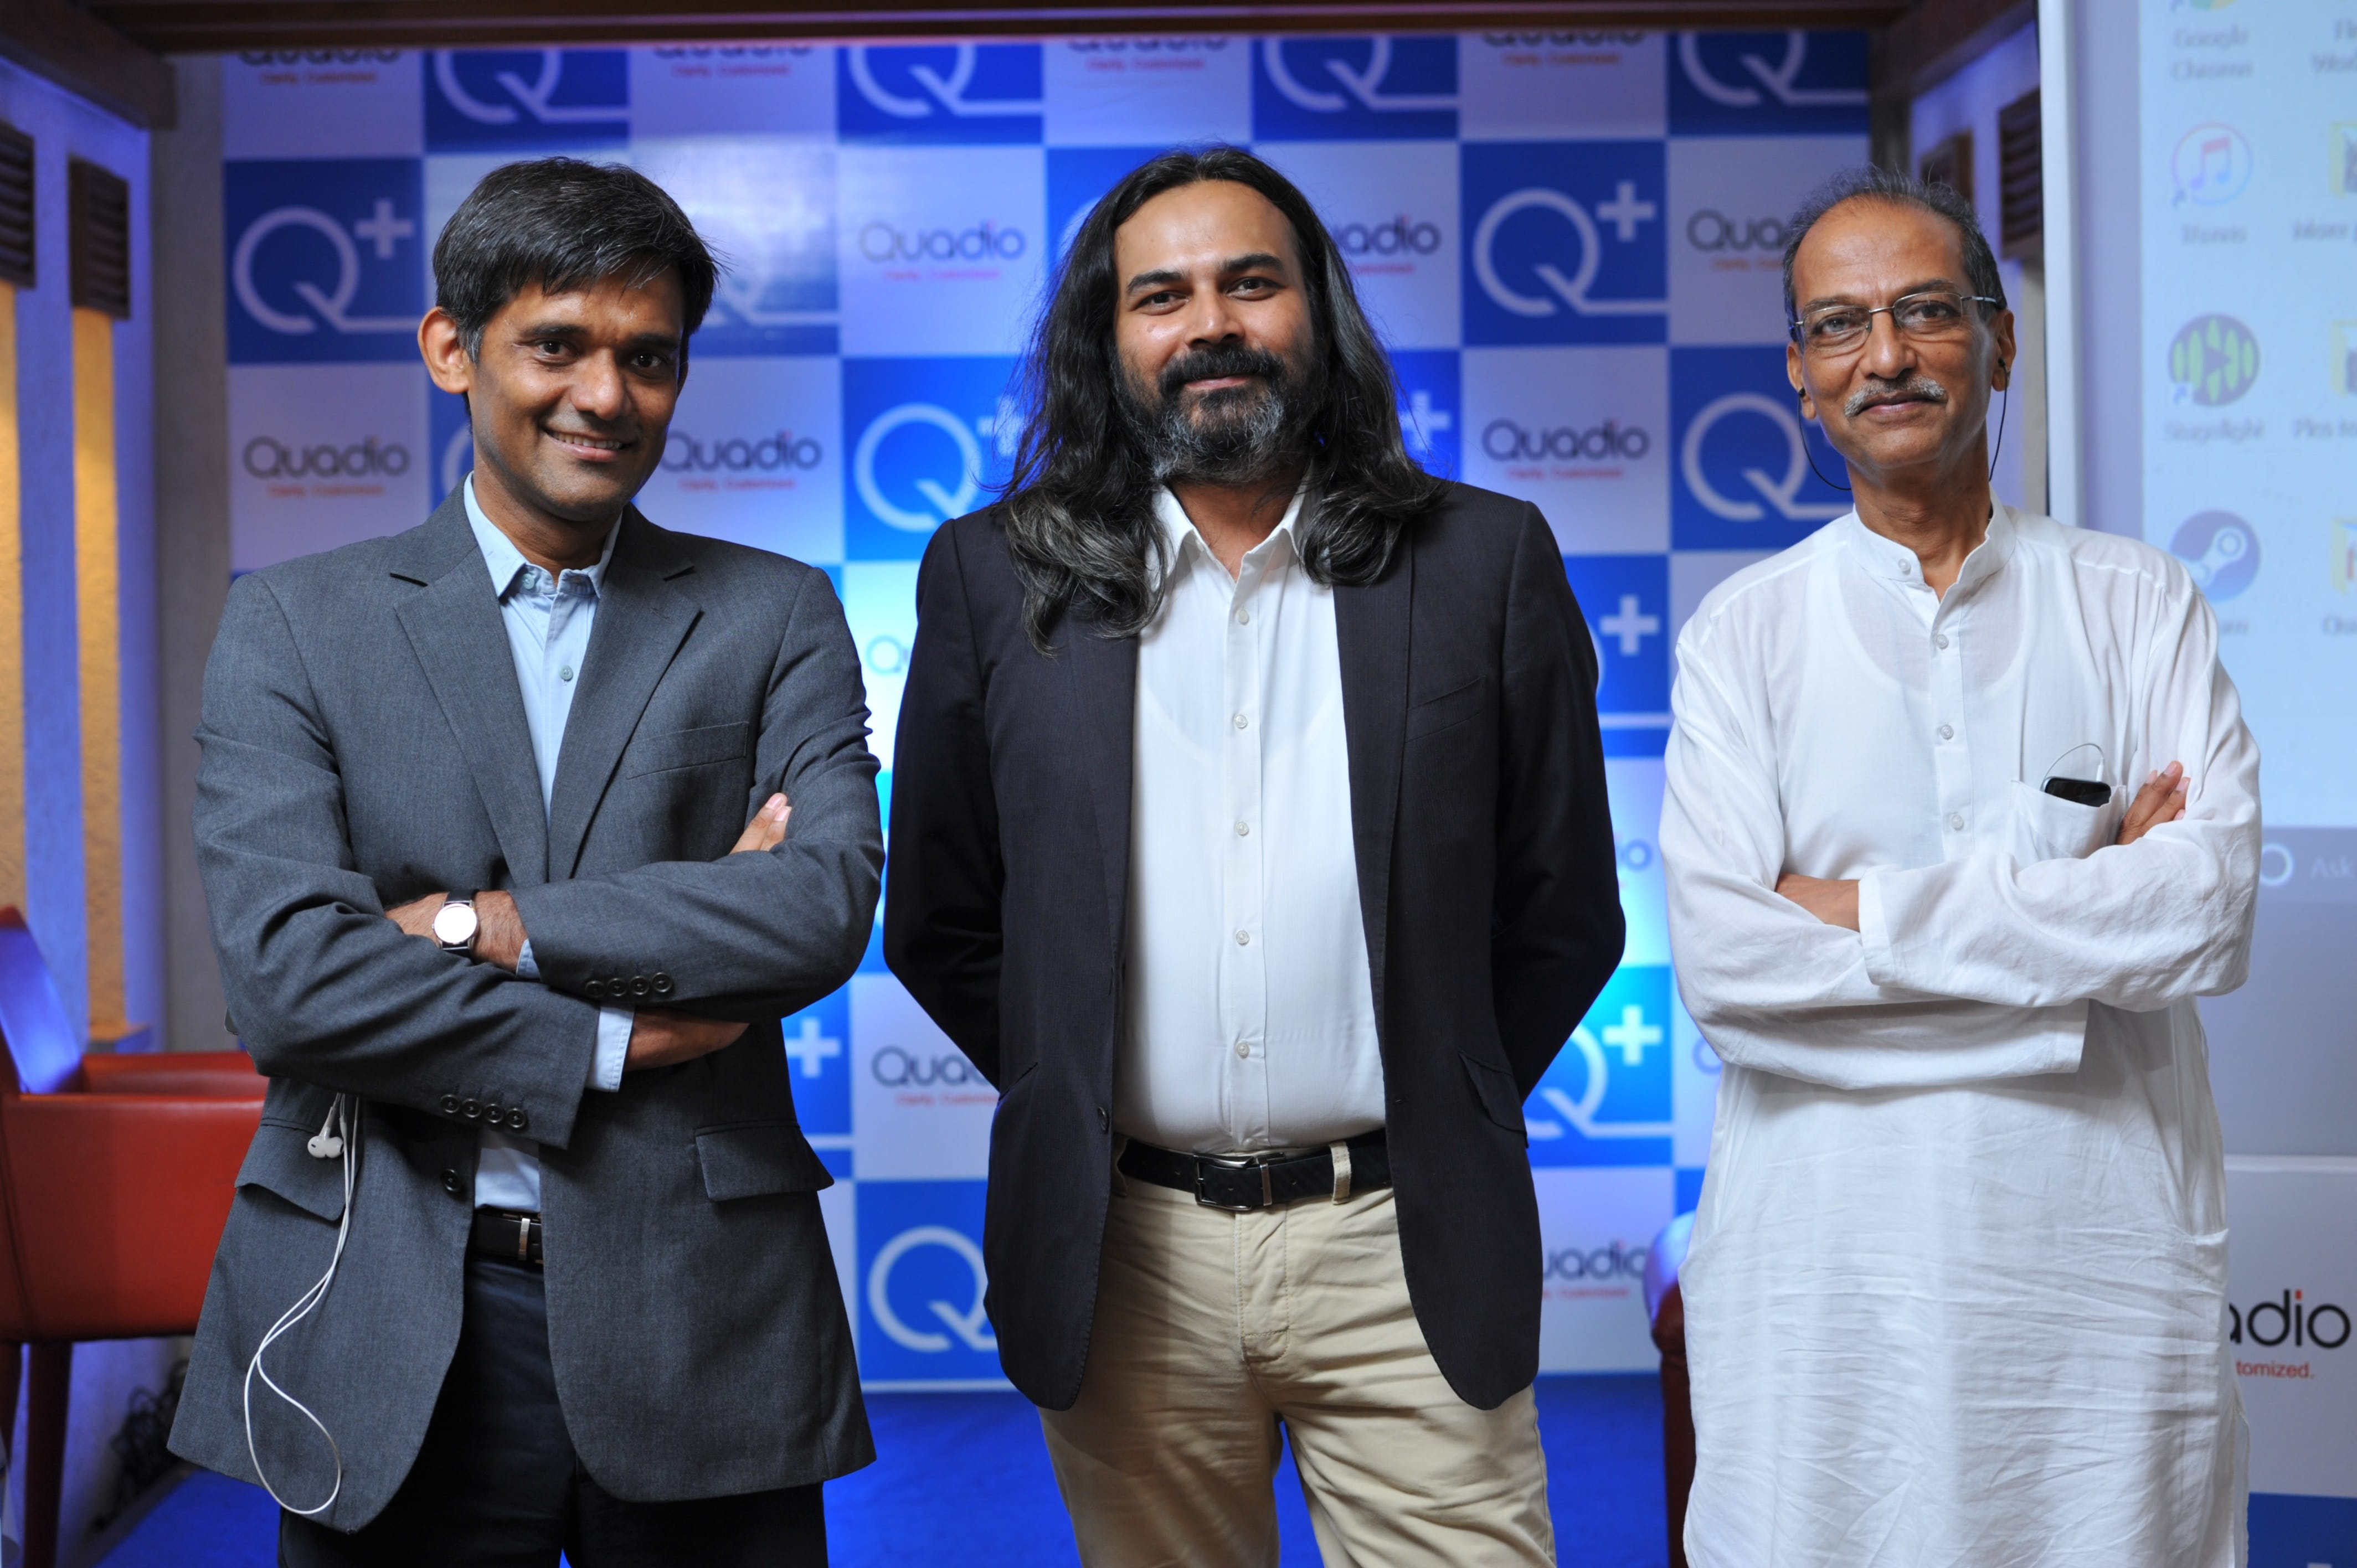 From L to R - Anurag Sharma  Co-founder & CTO_Neeraj Dotel  CEO_Paresh Patel  Co-founder of Quadio Devices Pvt Ltd